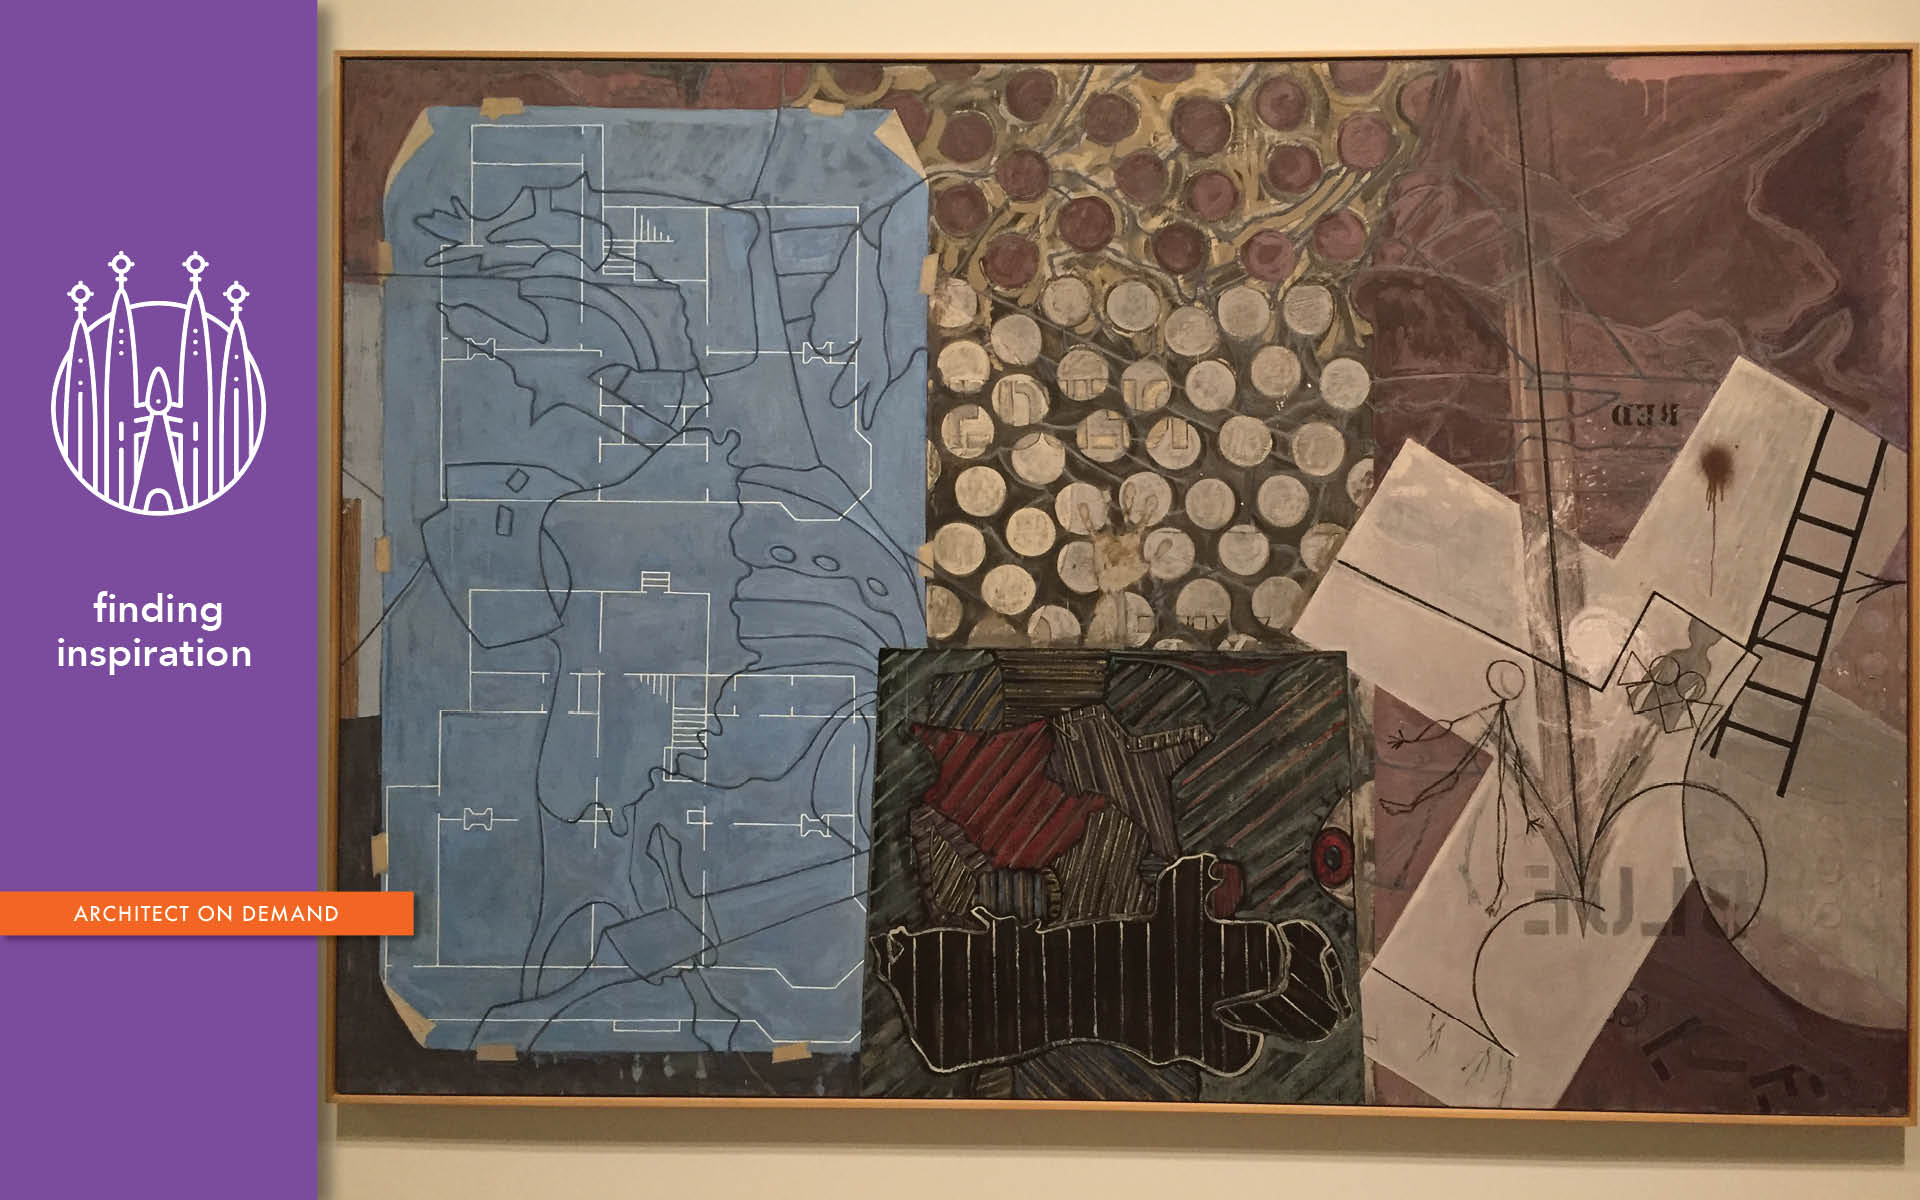 artist, truth, Jasper Johns, architect-on-demand, advice-without-strings